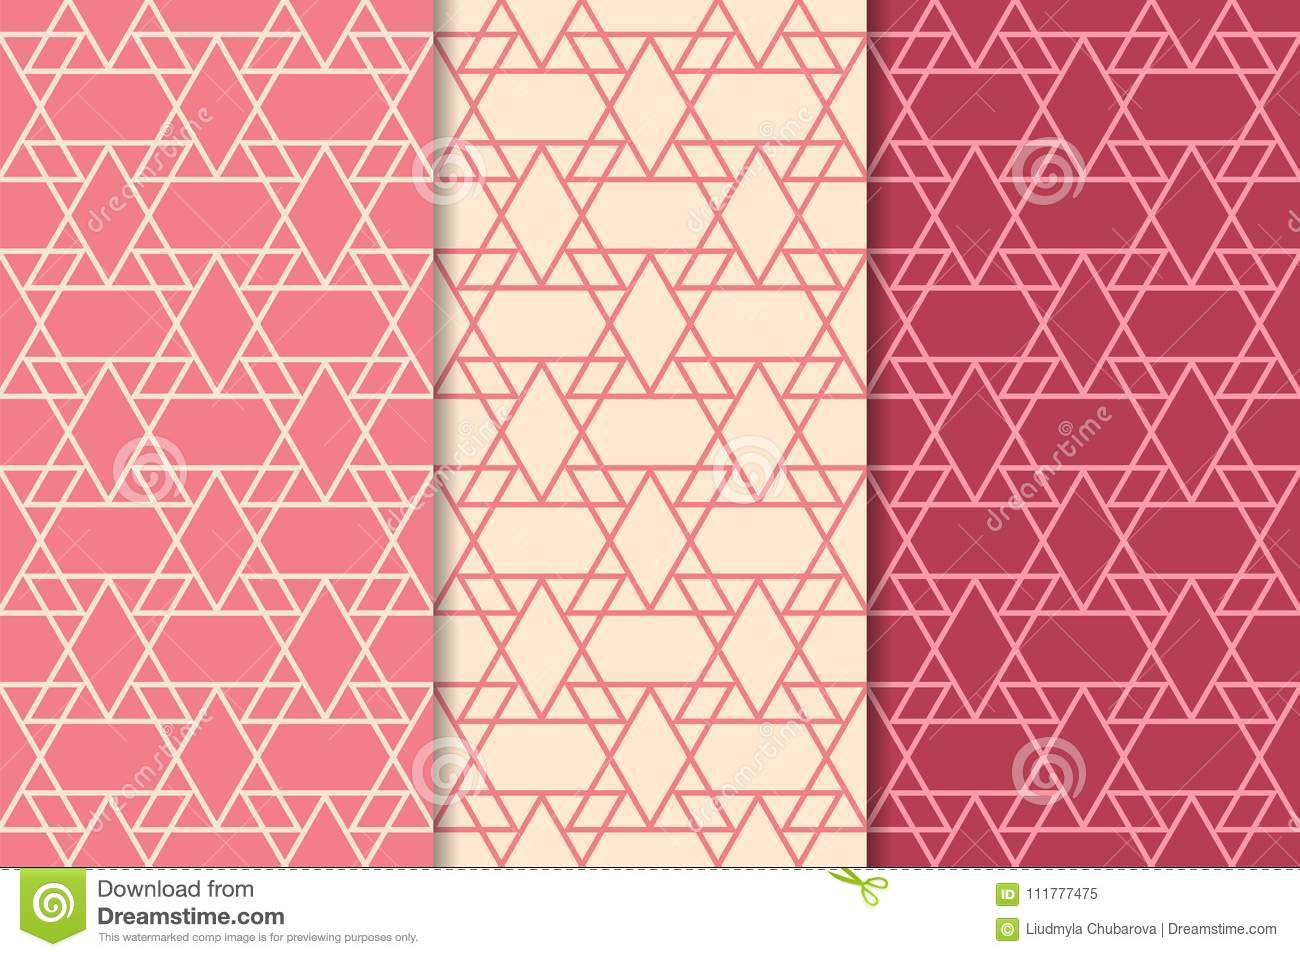 Cherry red geometric ornaments. Set of seamless patterns